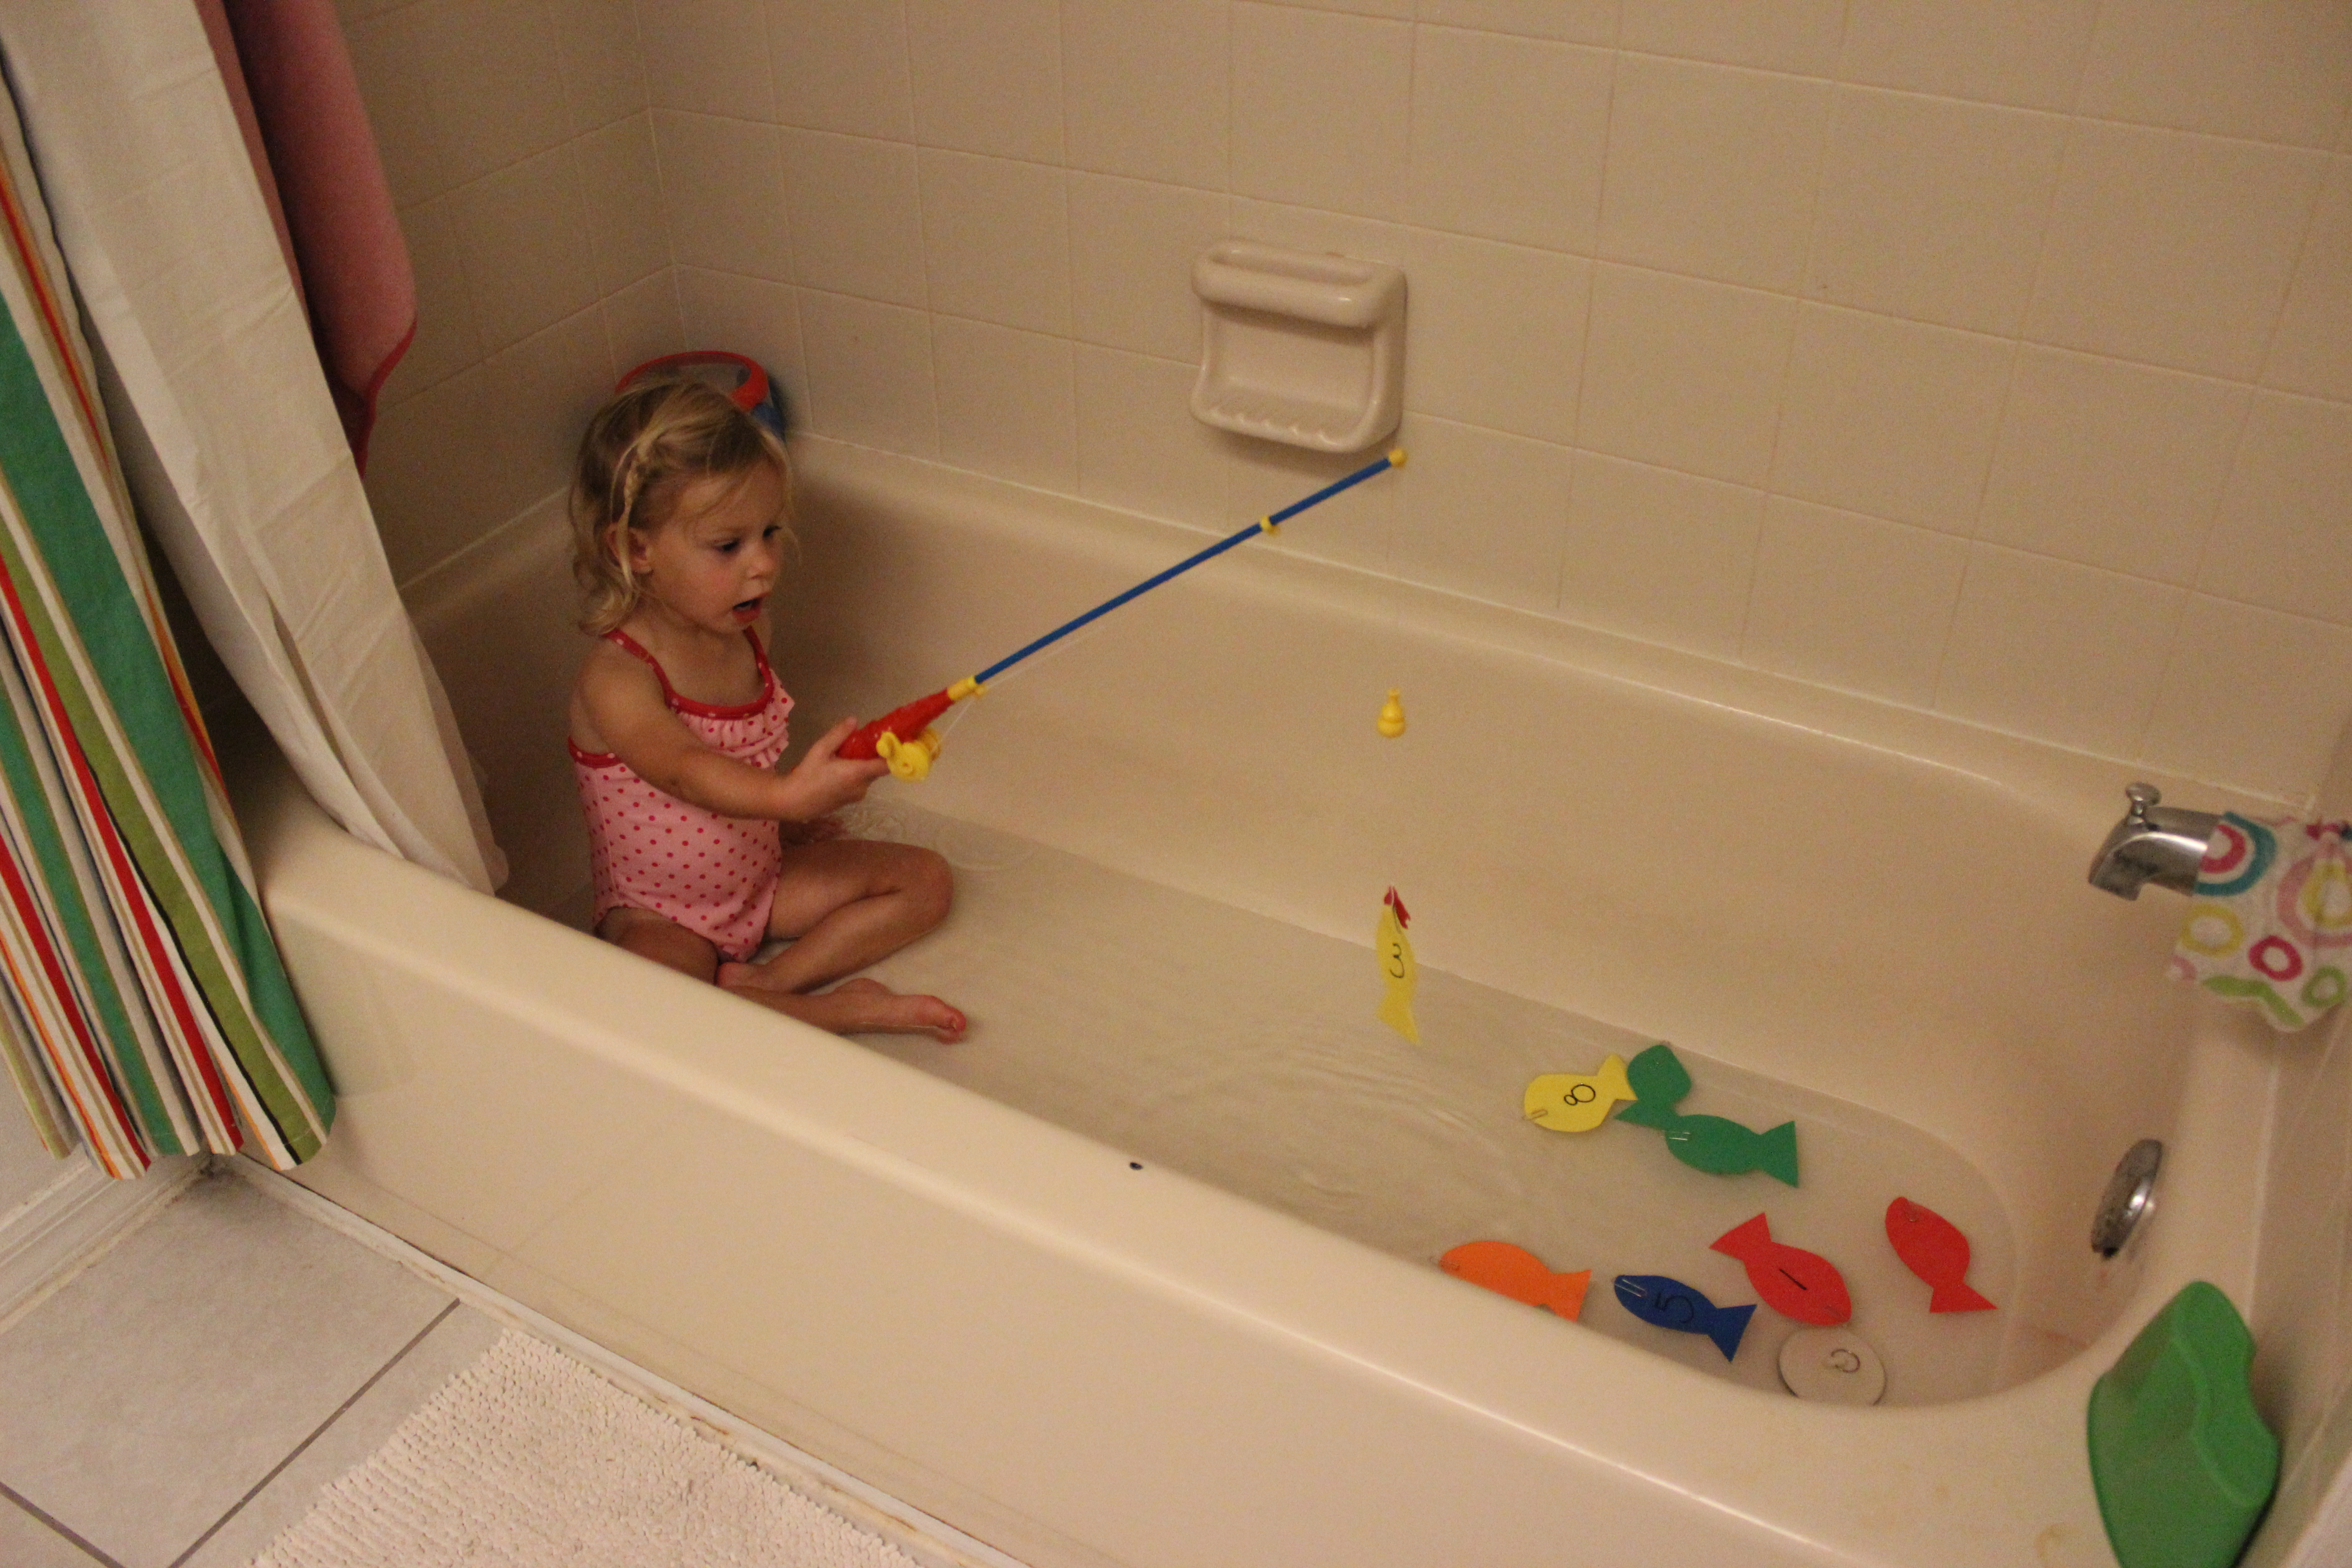 The Little Girl and the Bath Tub – Domesticating Michelle